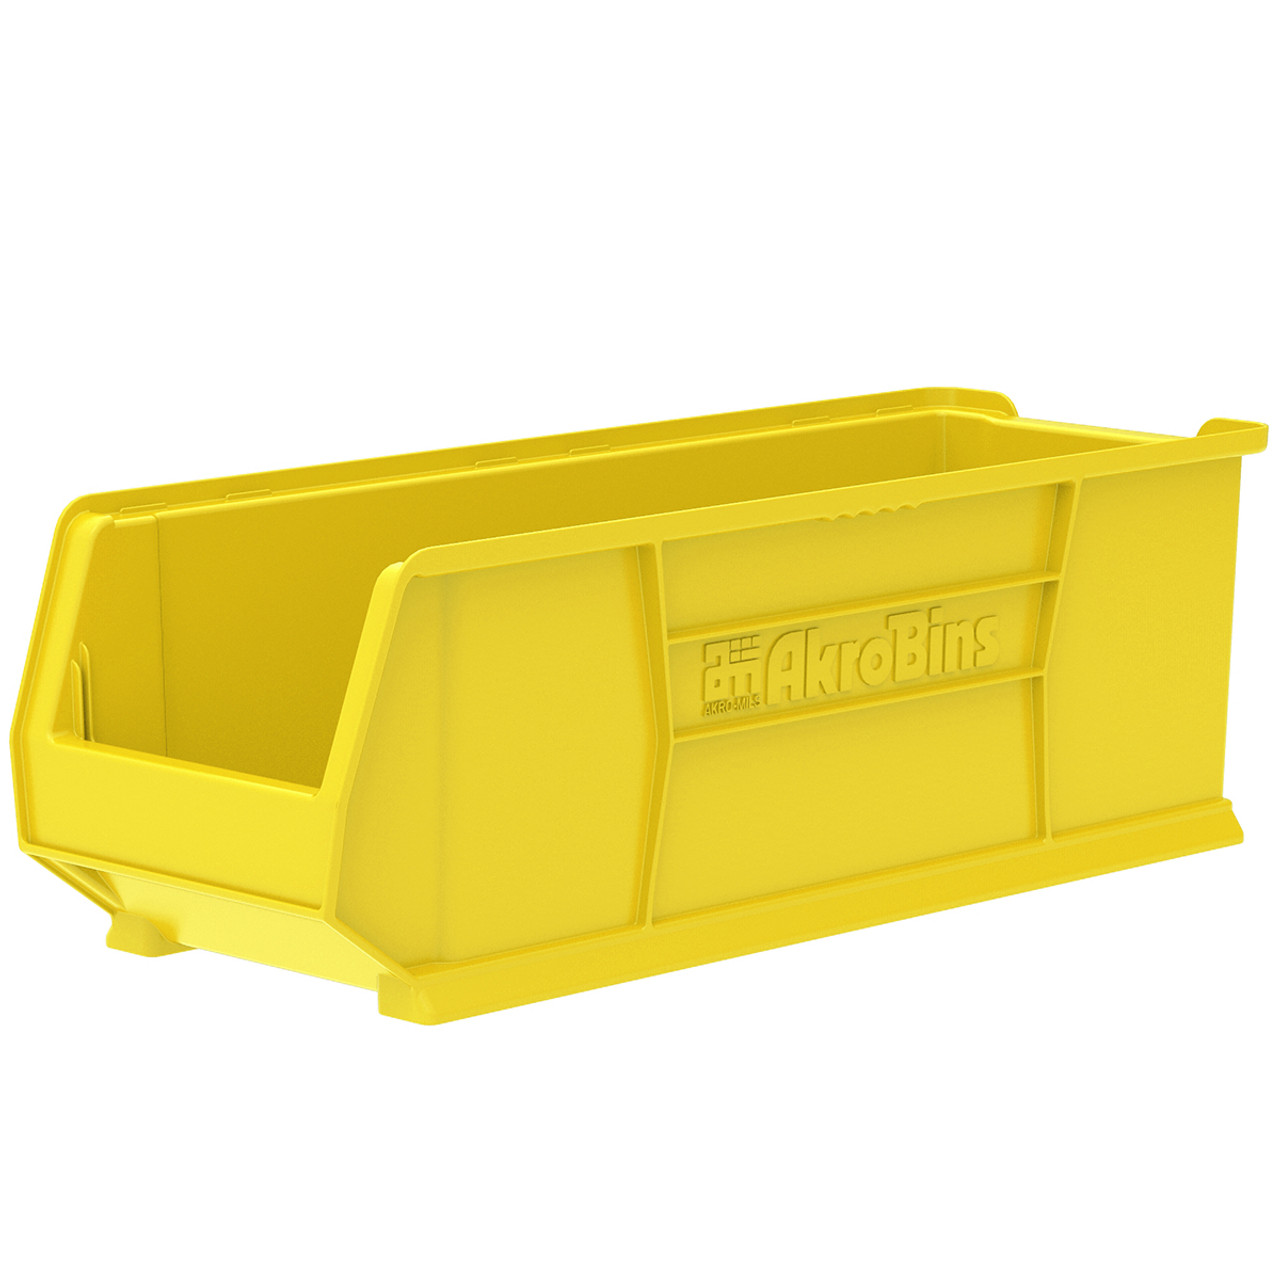 Bin, Super Size AkroBin 29-7/8 x 11 x 10 30292YELLO